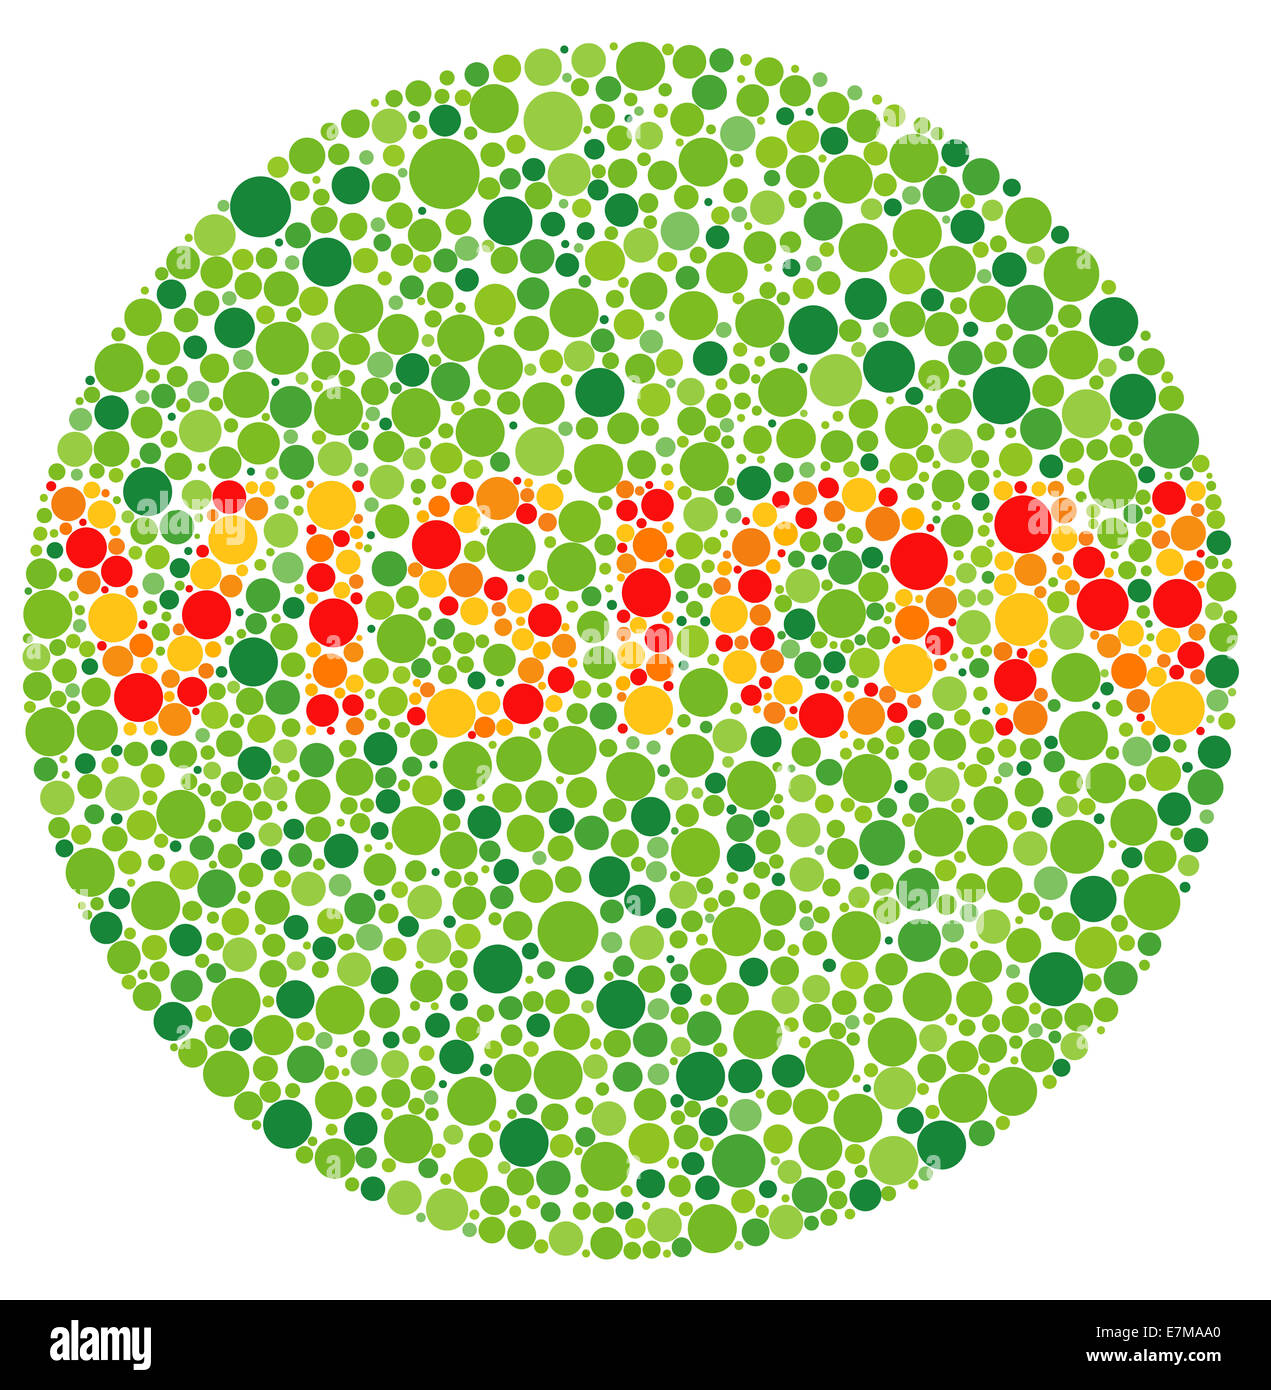 Colour blindness vision stock image